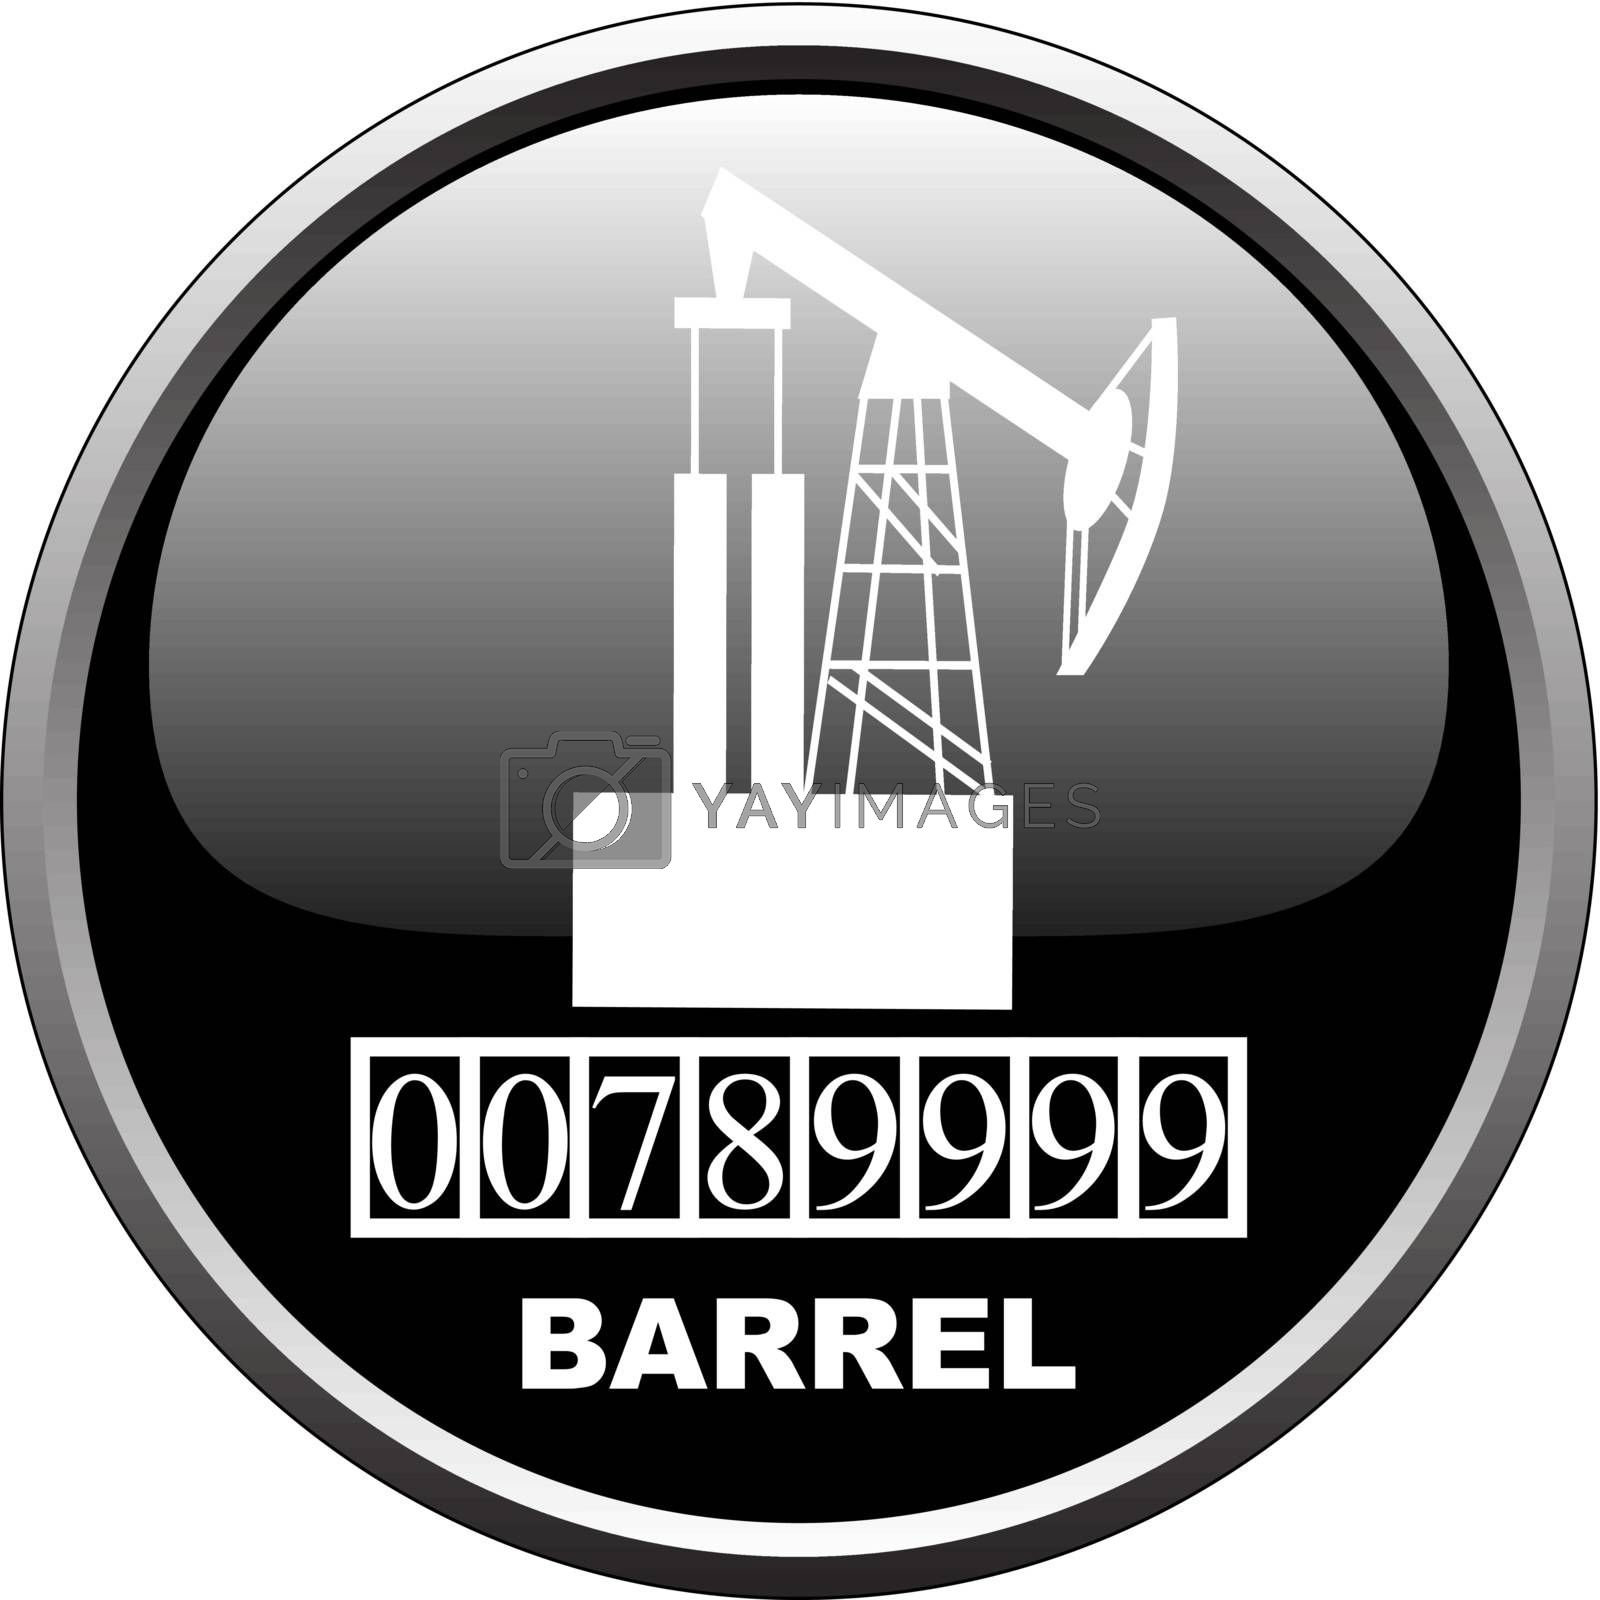 Royalty free image of Barrel measure device by EugenP